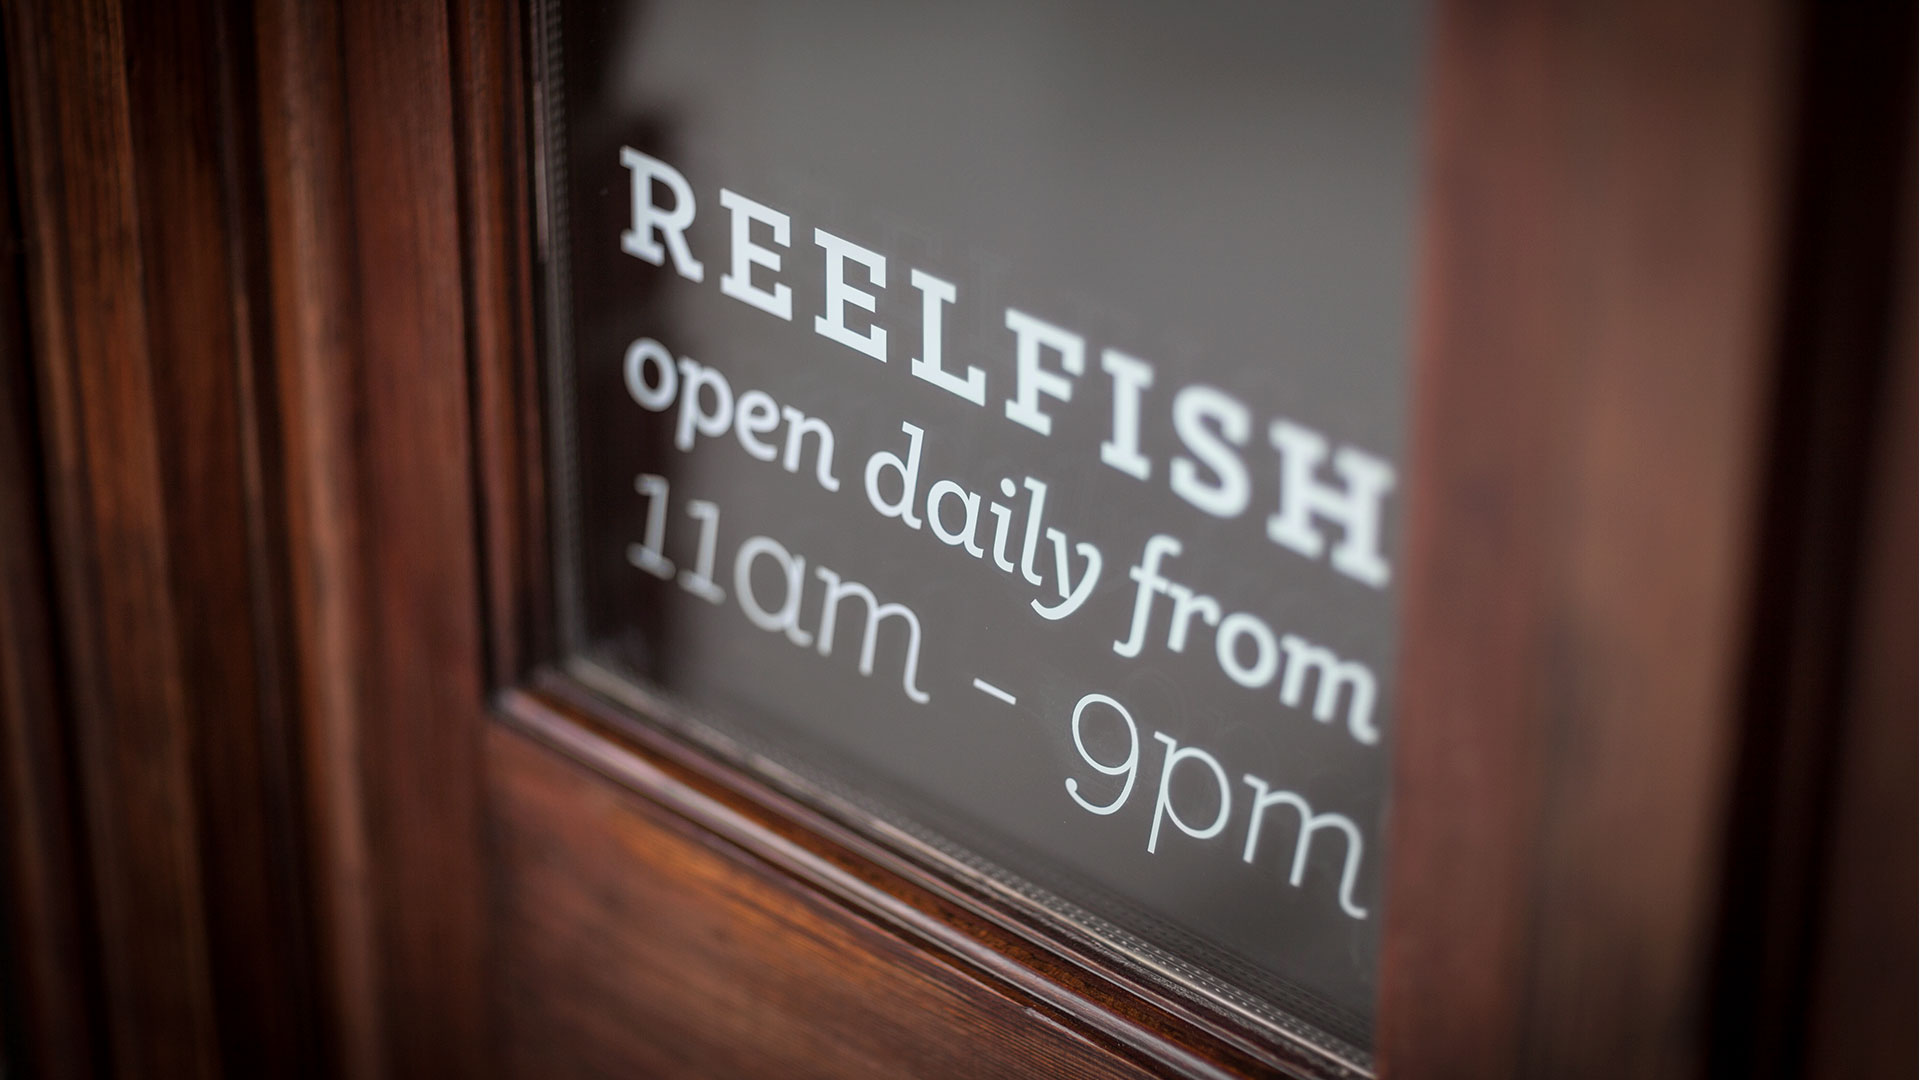 reelfish restaurant window signage